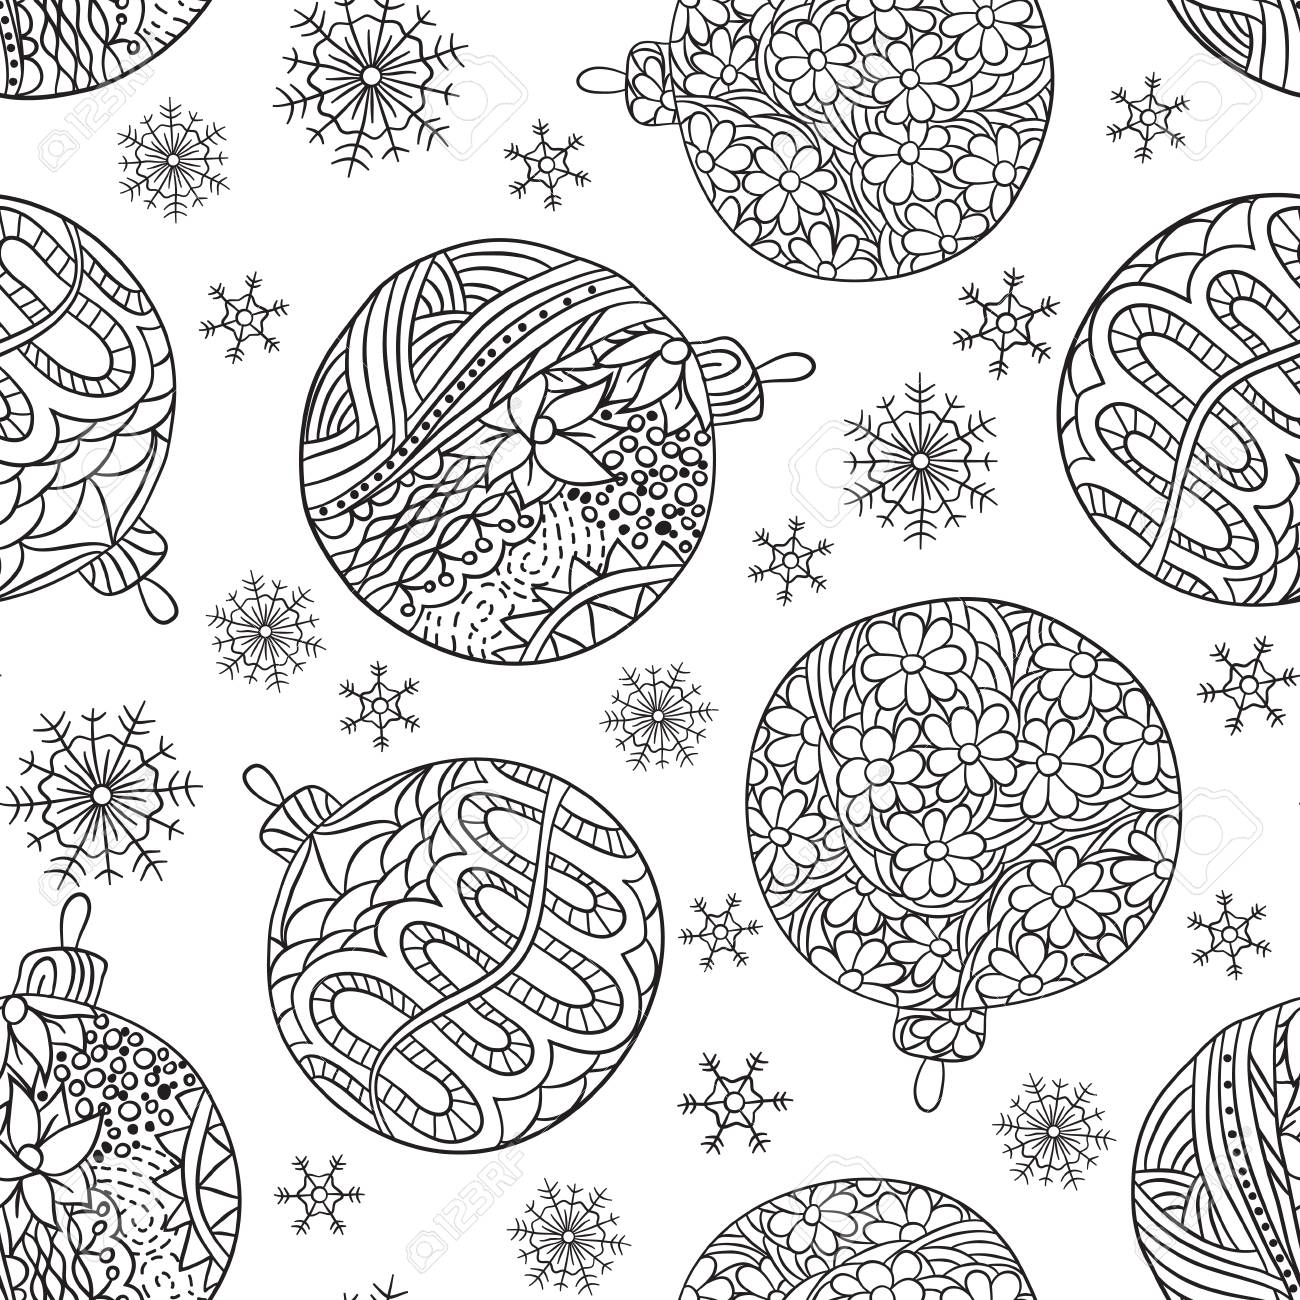 new year seamless pattern with black outline drawn christmas balls and snowflakes christmas coloring book